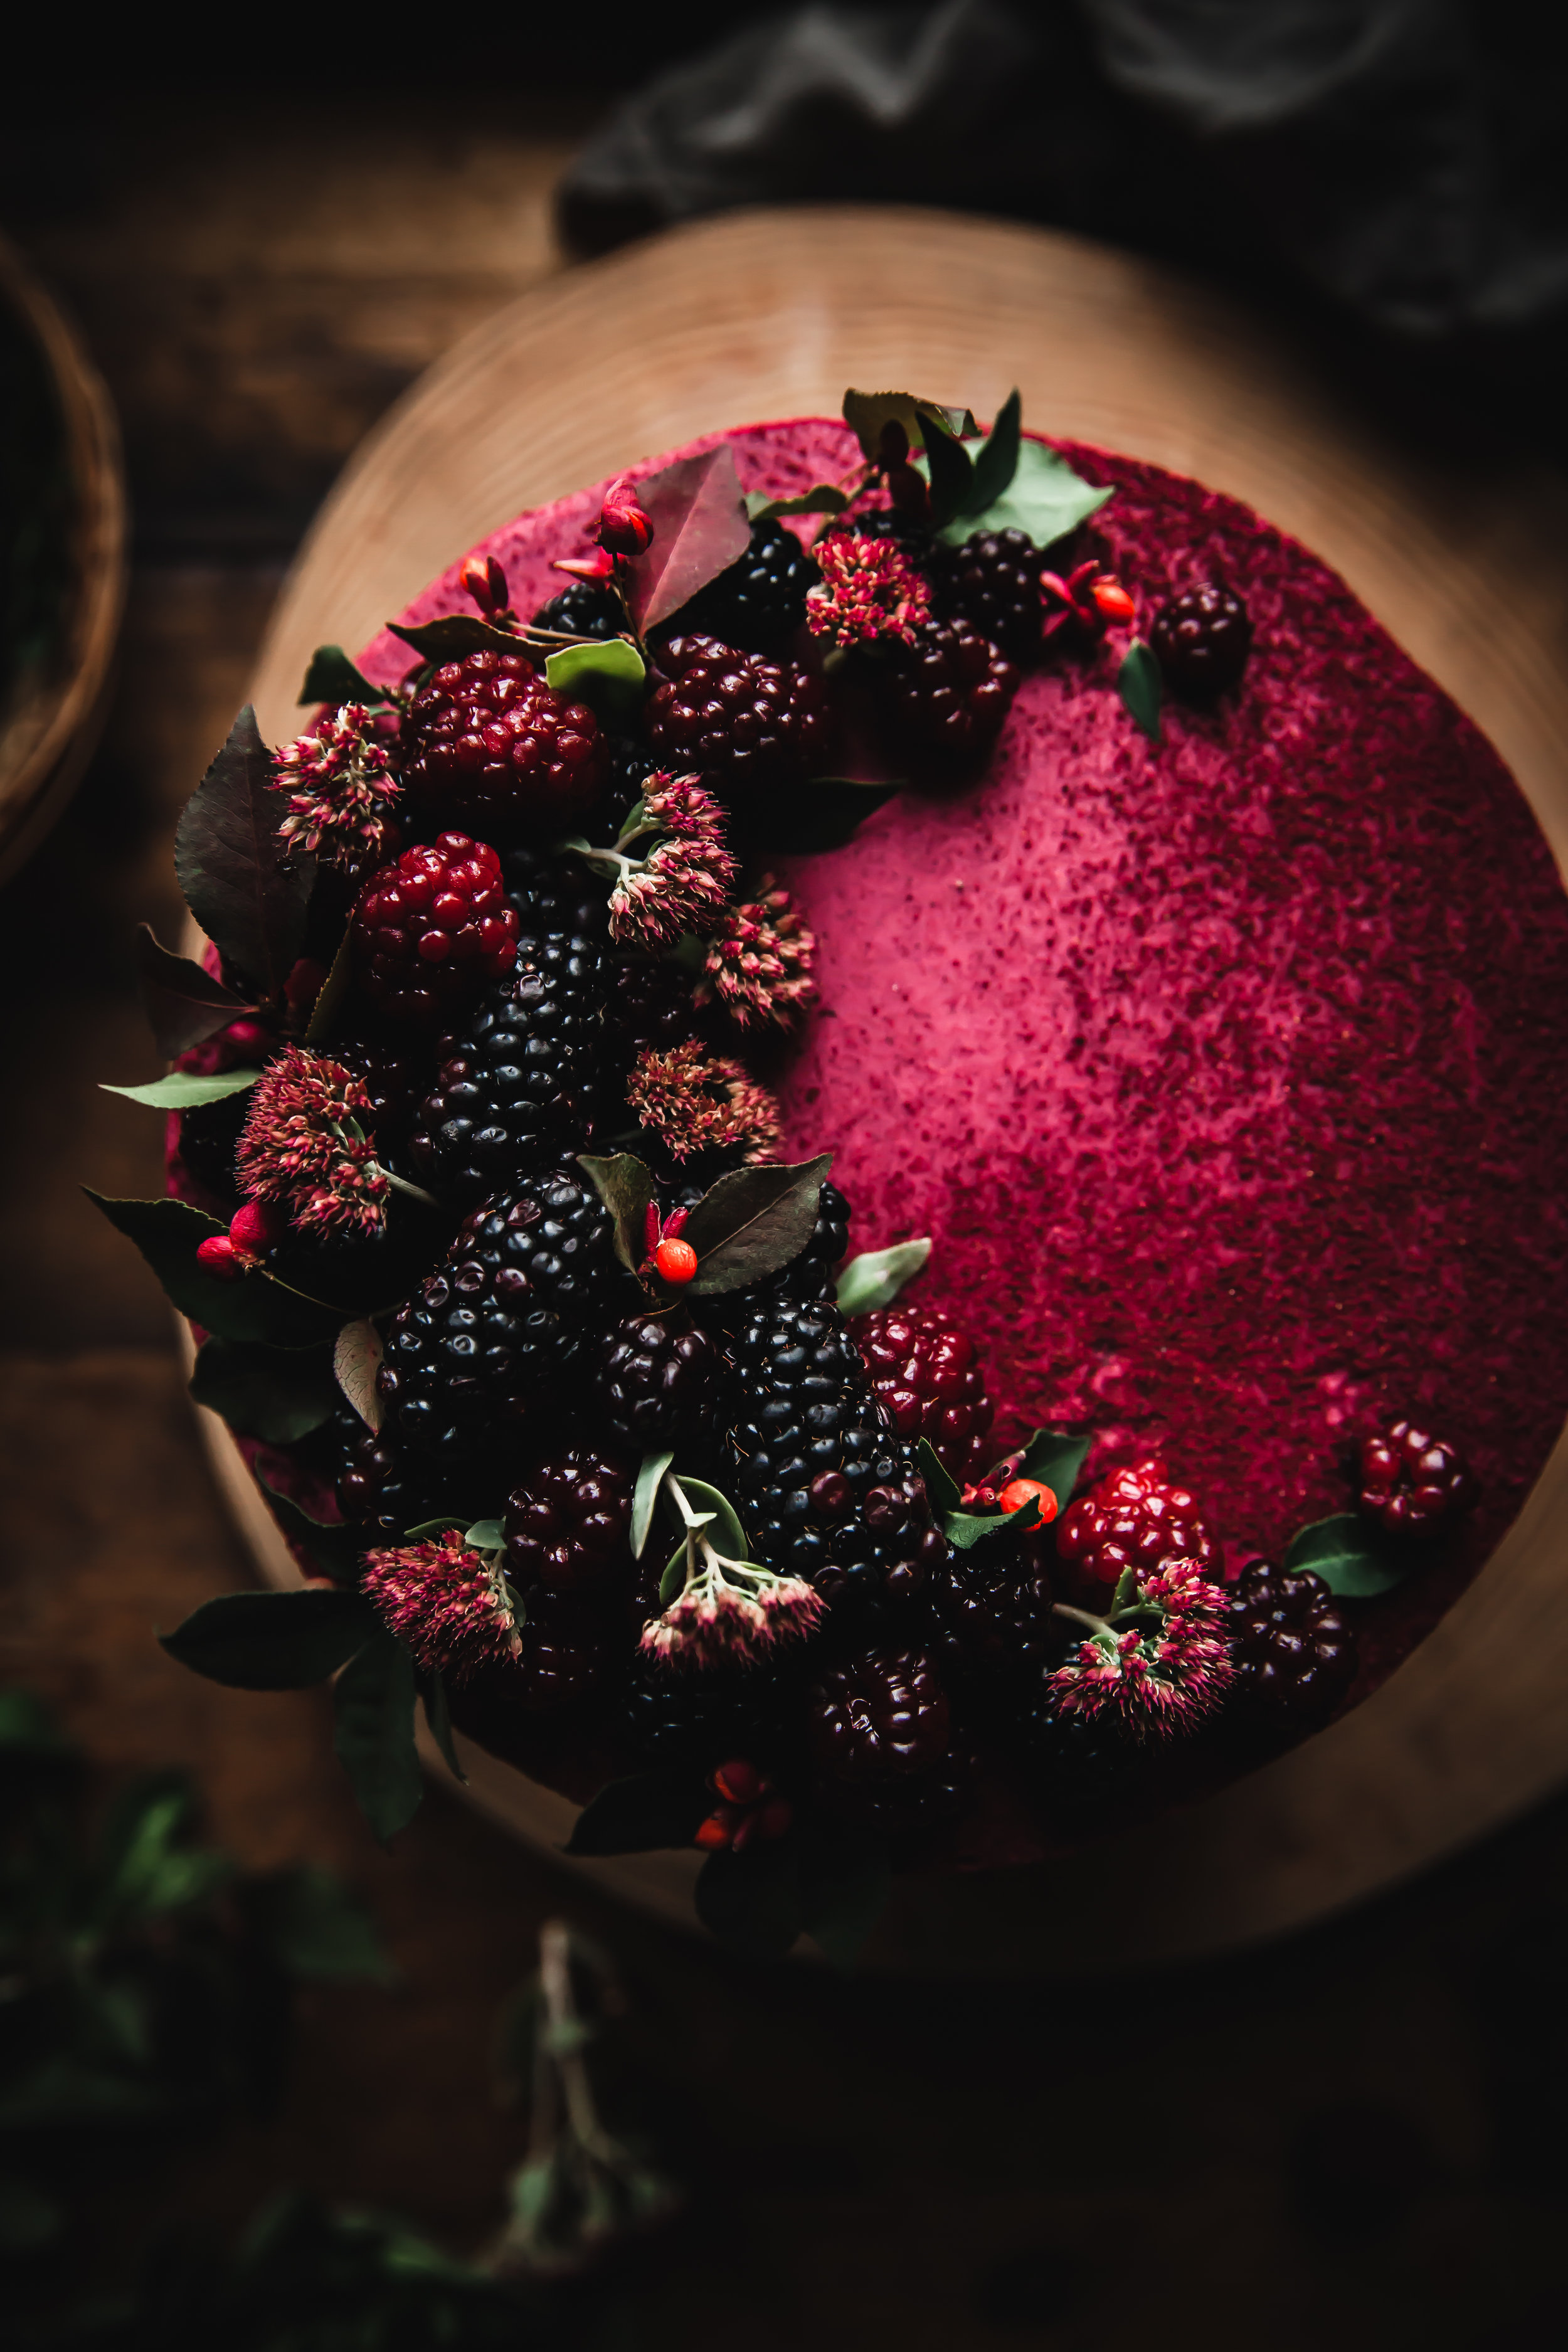 PRESET - FALL- MULBERRY - edited (1 of 1).jpg